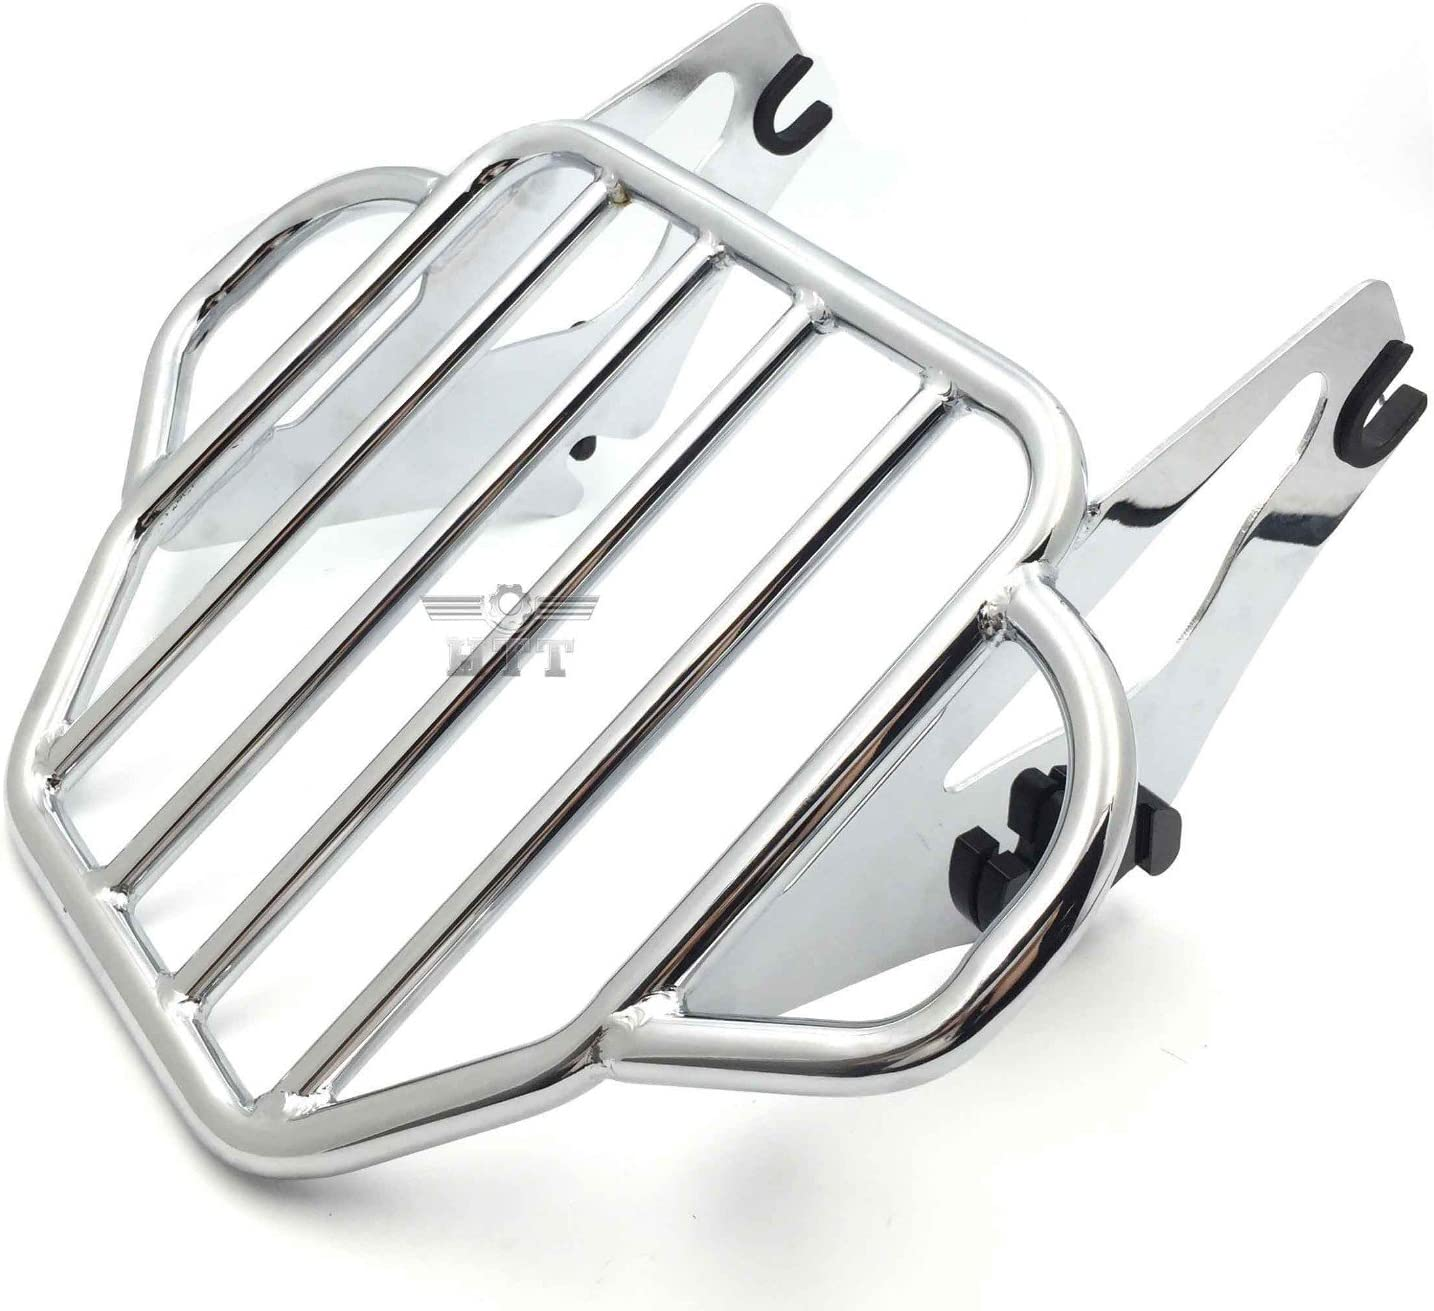 i.e Road King FLHR// Road Glide FLTRX HTT Motorcycle Chrome H-D Detachables Two-Up Luggage Rack For 09-later Touring models